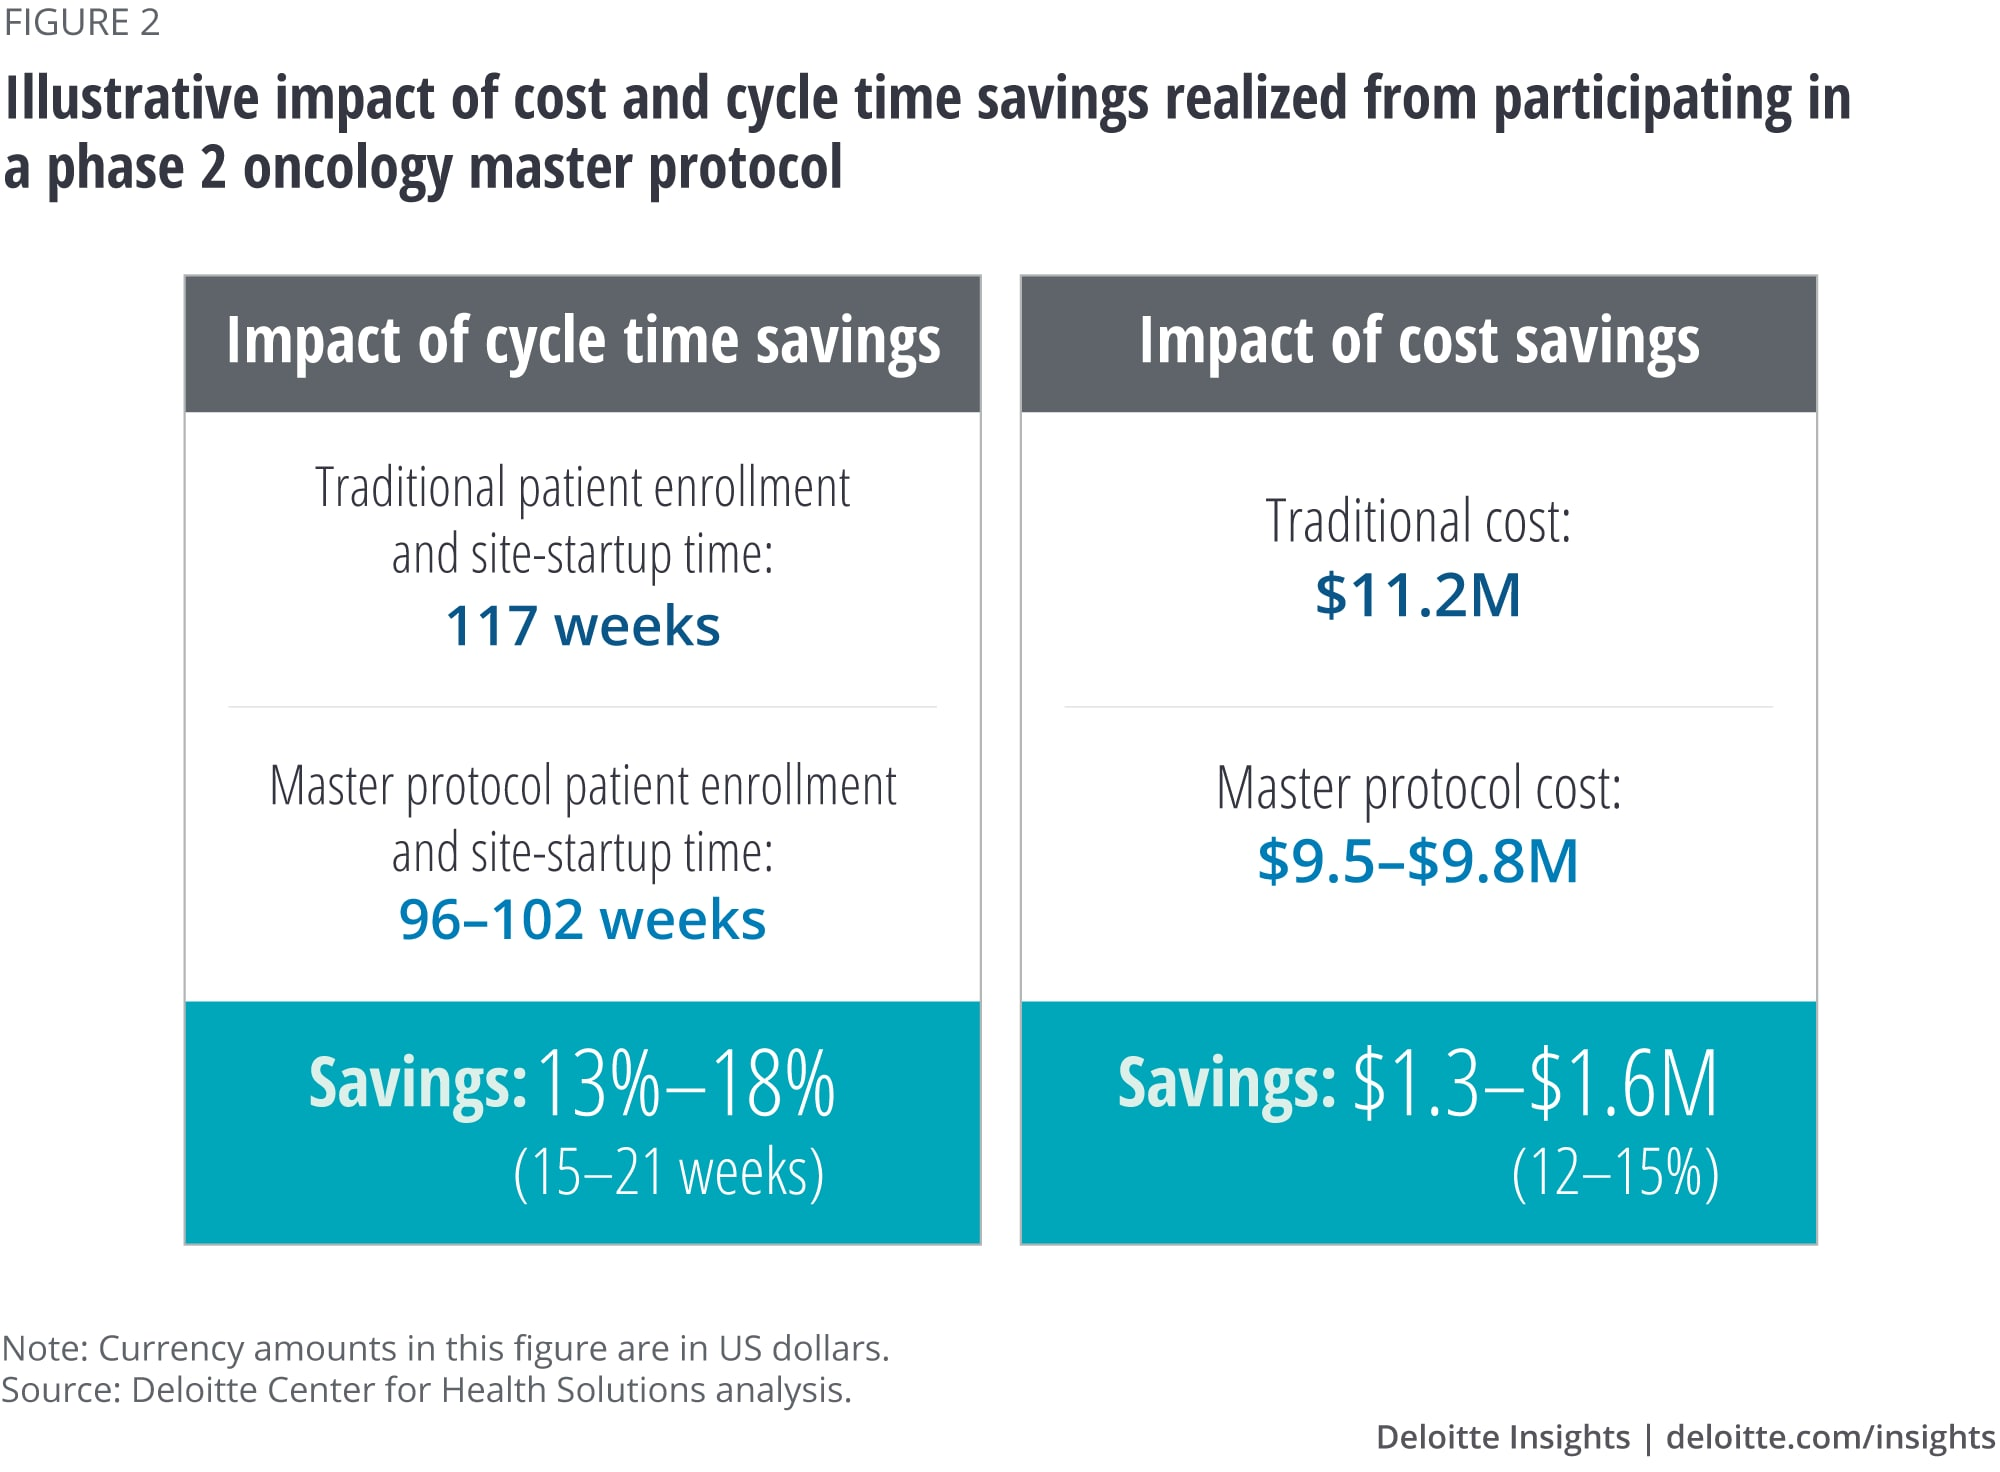 Illustrative impact of cost and cycle time savings realized from participating in a phase 2 oncology master protocol